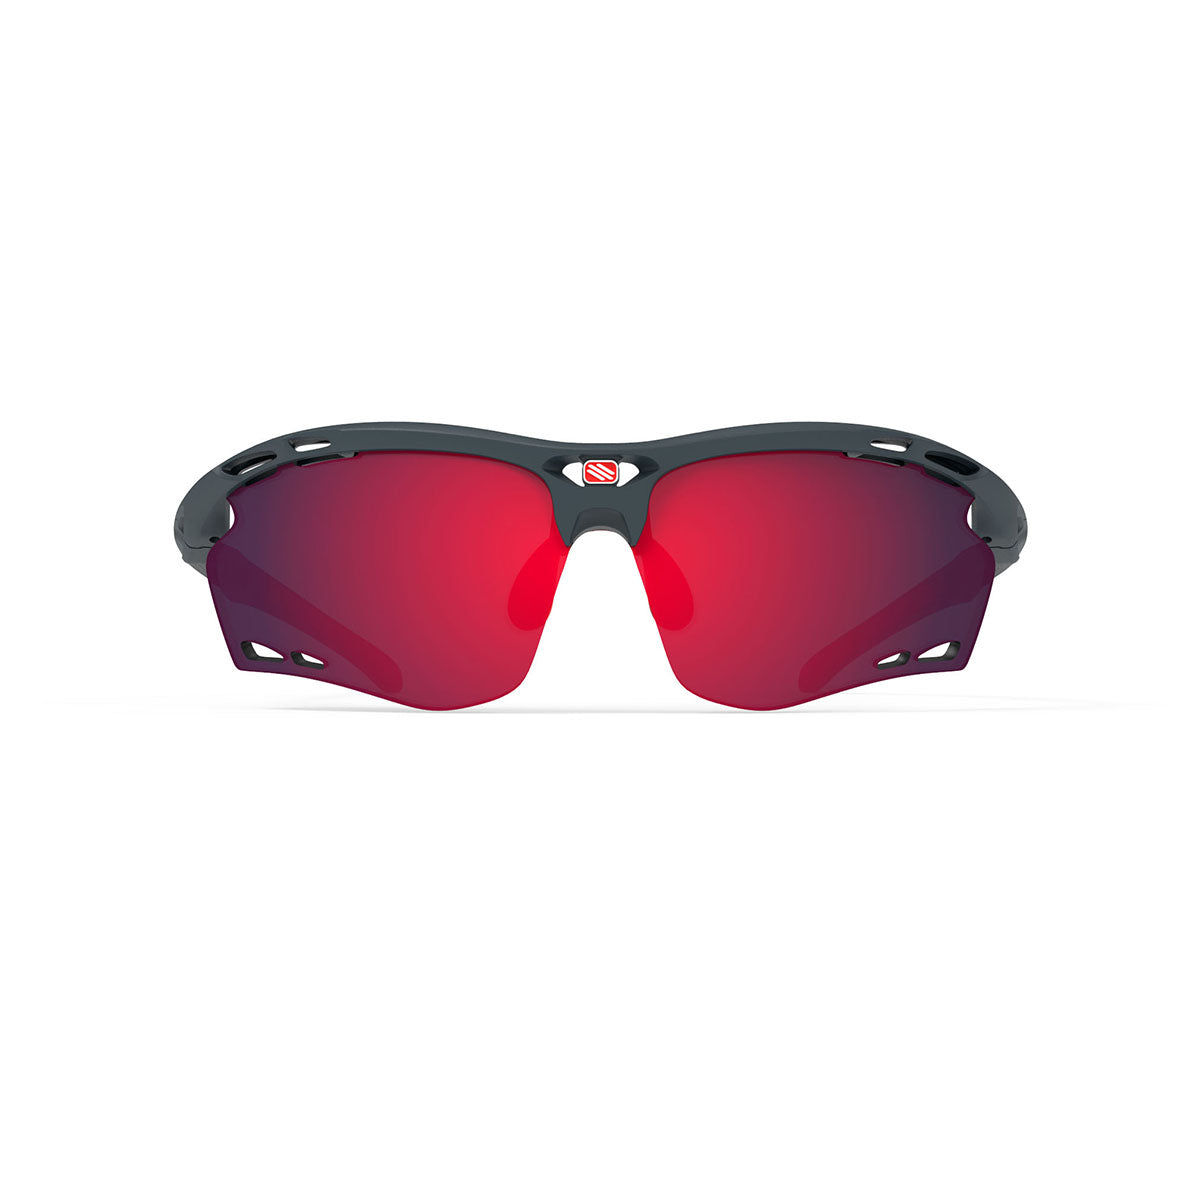 Rudy Project - Propulse - frame color: Charcoal Matte - lens color: Multilaser Red - Bumper Color:  - photo angle: Front View Variant Hover Image